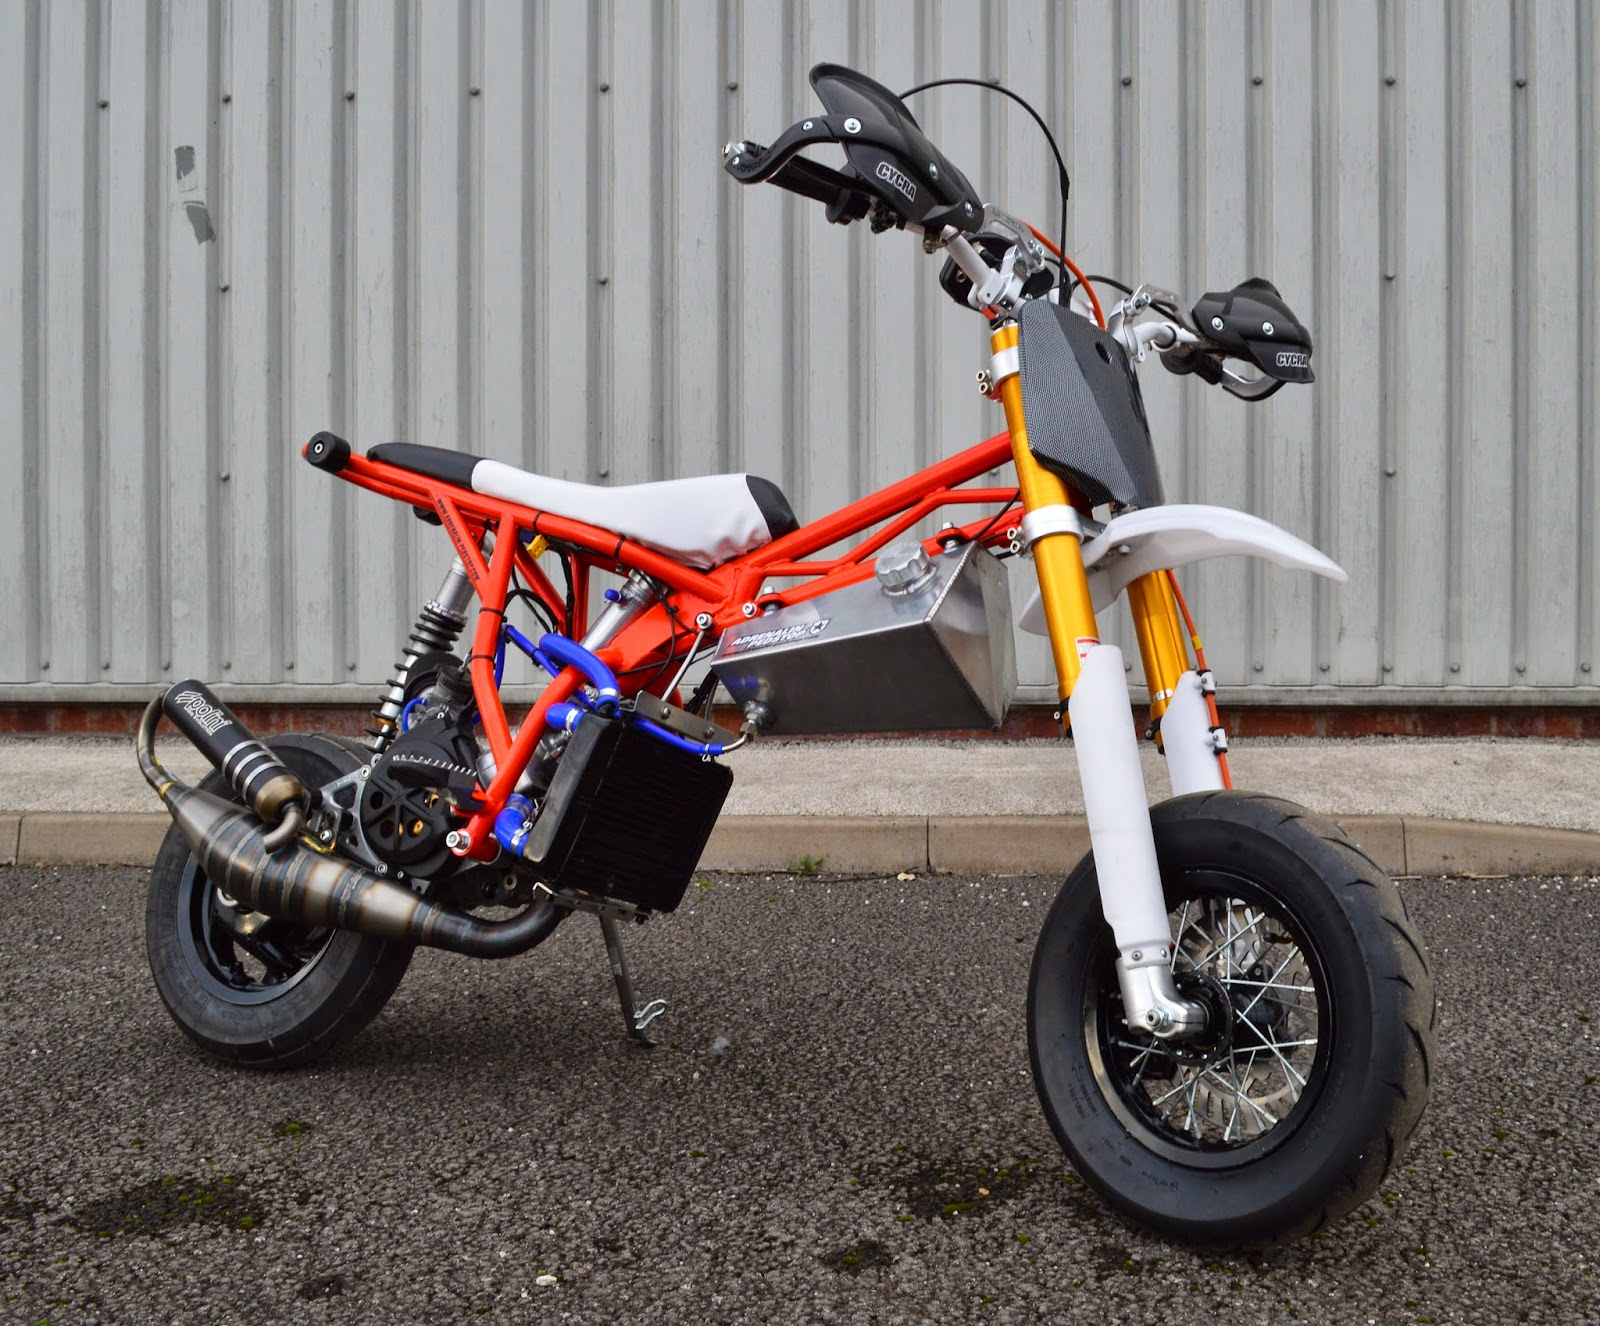 adrenalin scooter performance parts pedstop 94cc pitbike hybrid with automatic race engine update. Black Bedroom Furniture Sets. Home Design Ideas